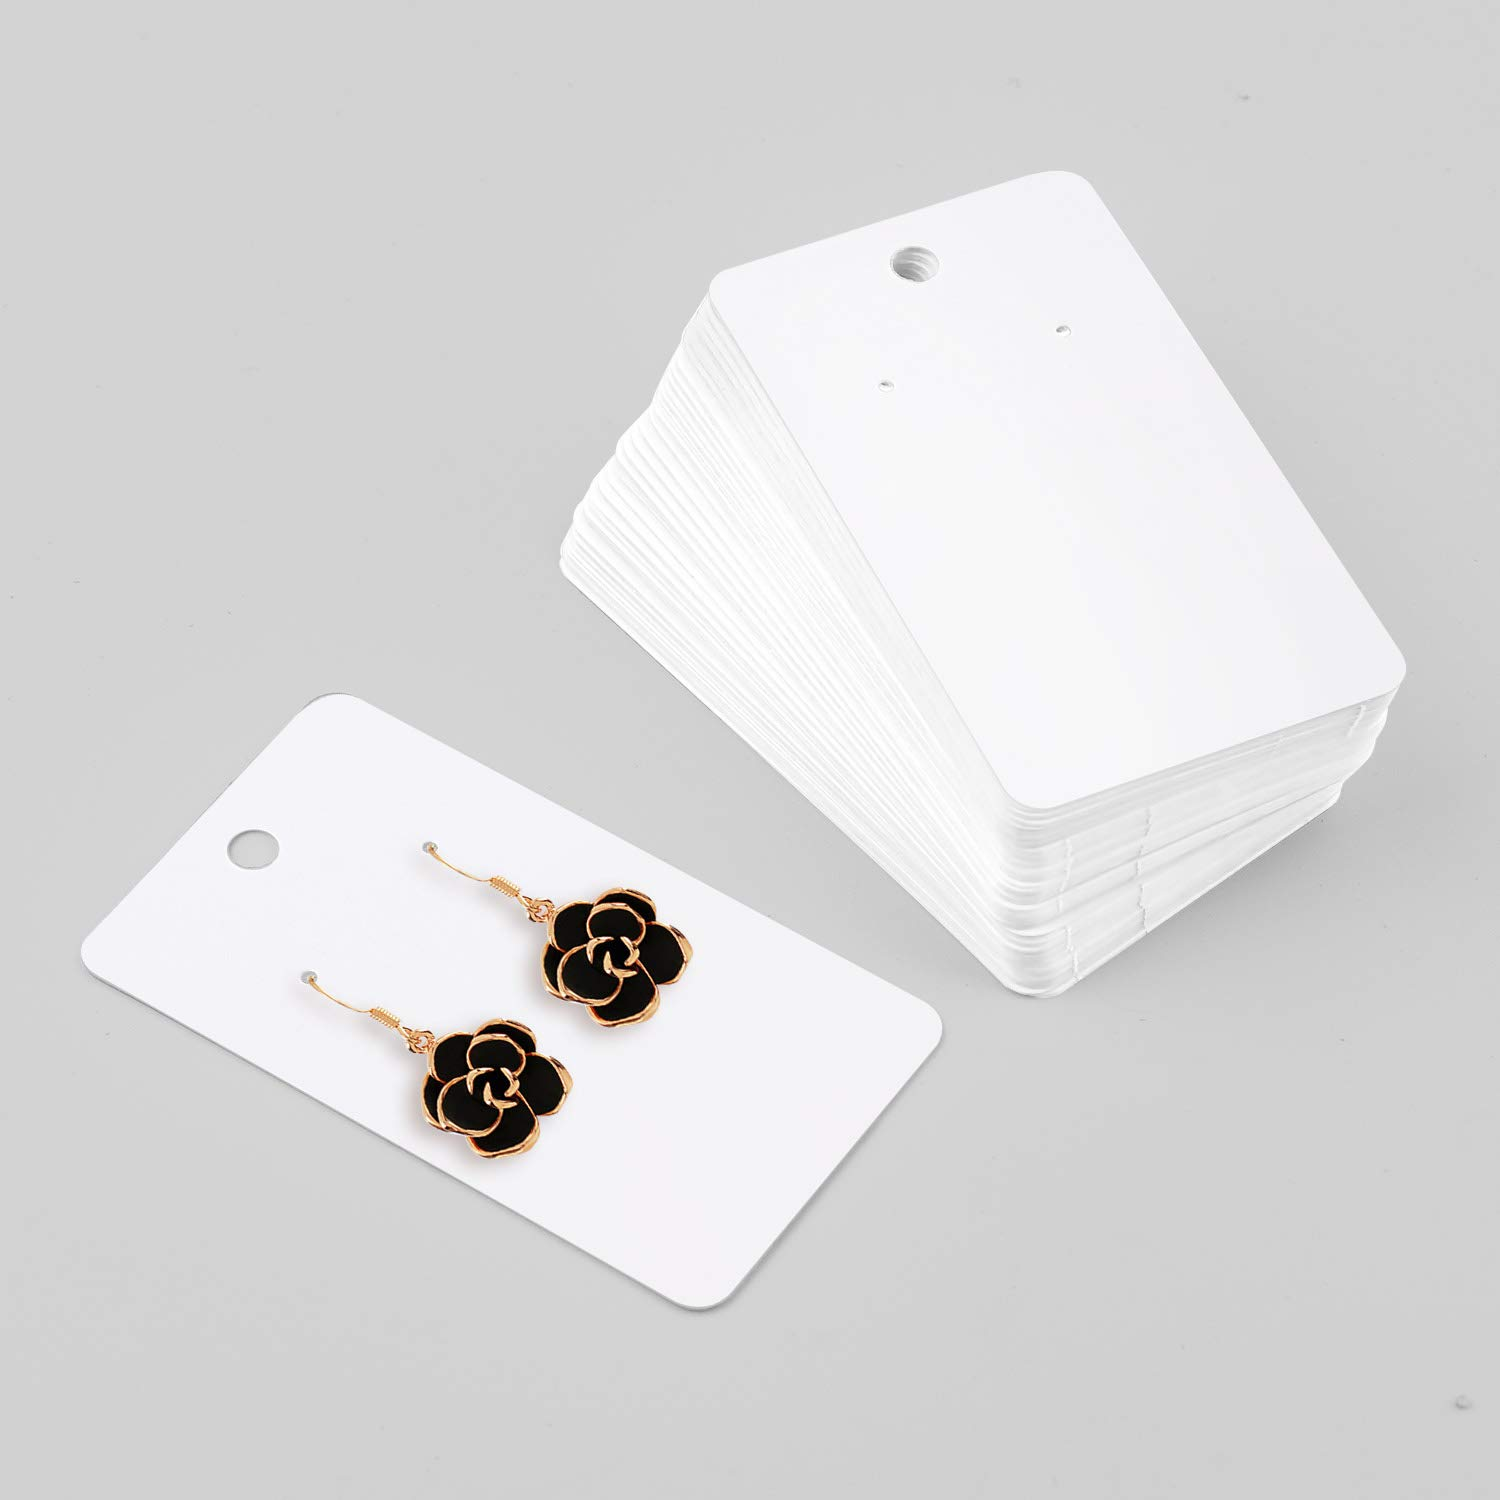 Coopay 200 Pieces Earring Display Card Earring Card Holder Blank Kraft Paper Tags for DIY Ear Studs and Earrings,3.5 x 2 Inches Black